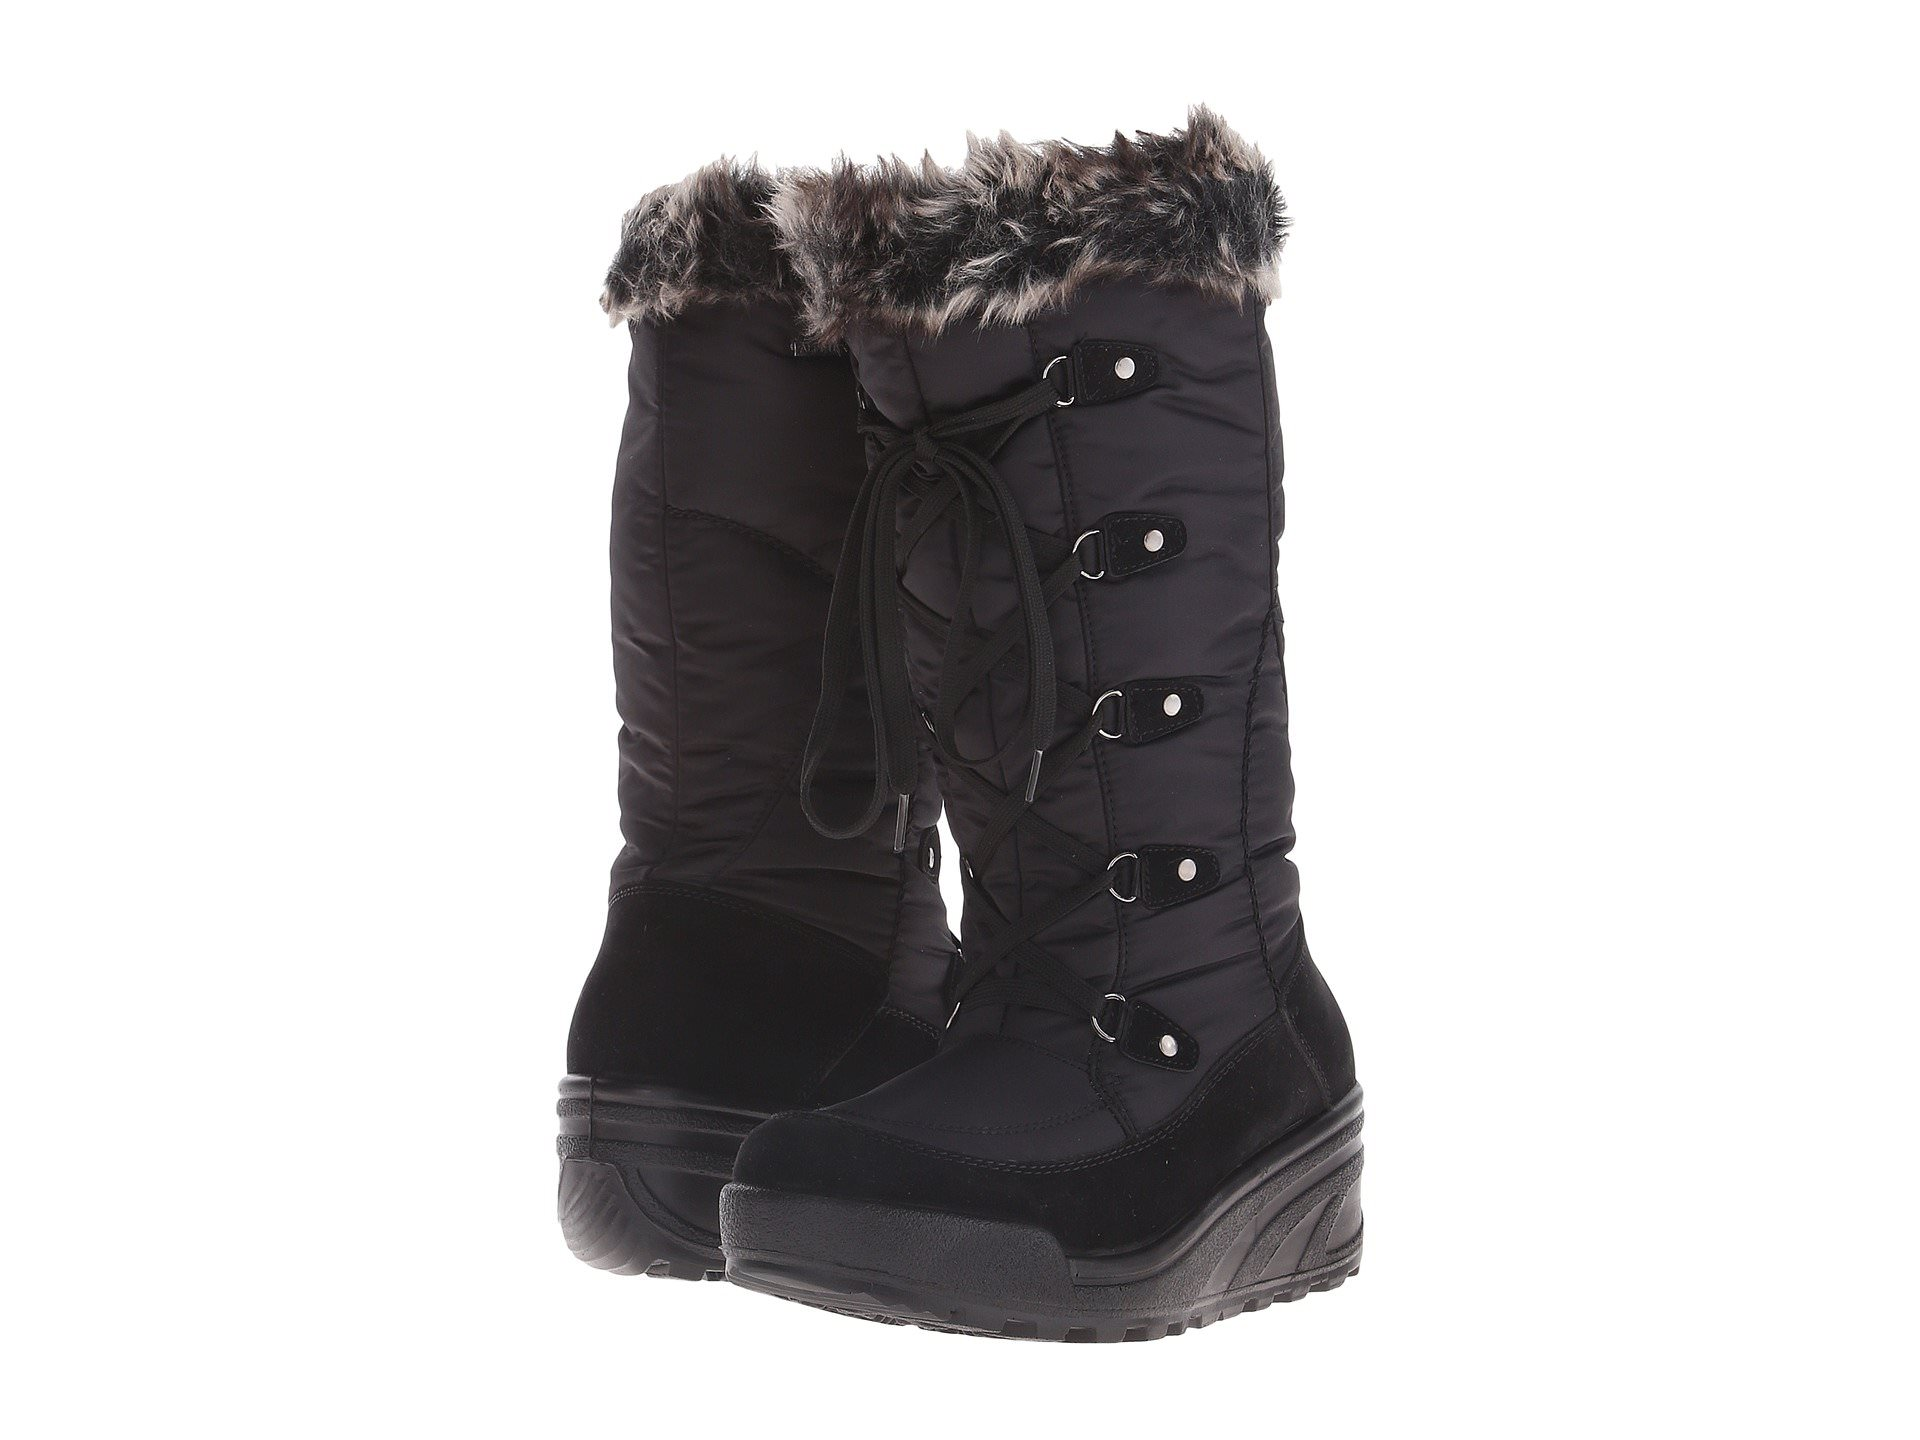 Spring Step NORTHRIDGE Womens Black Warm Winter Zip Up Snow Boots by Spring Step